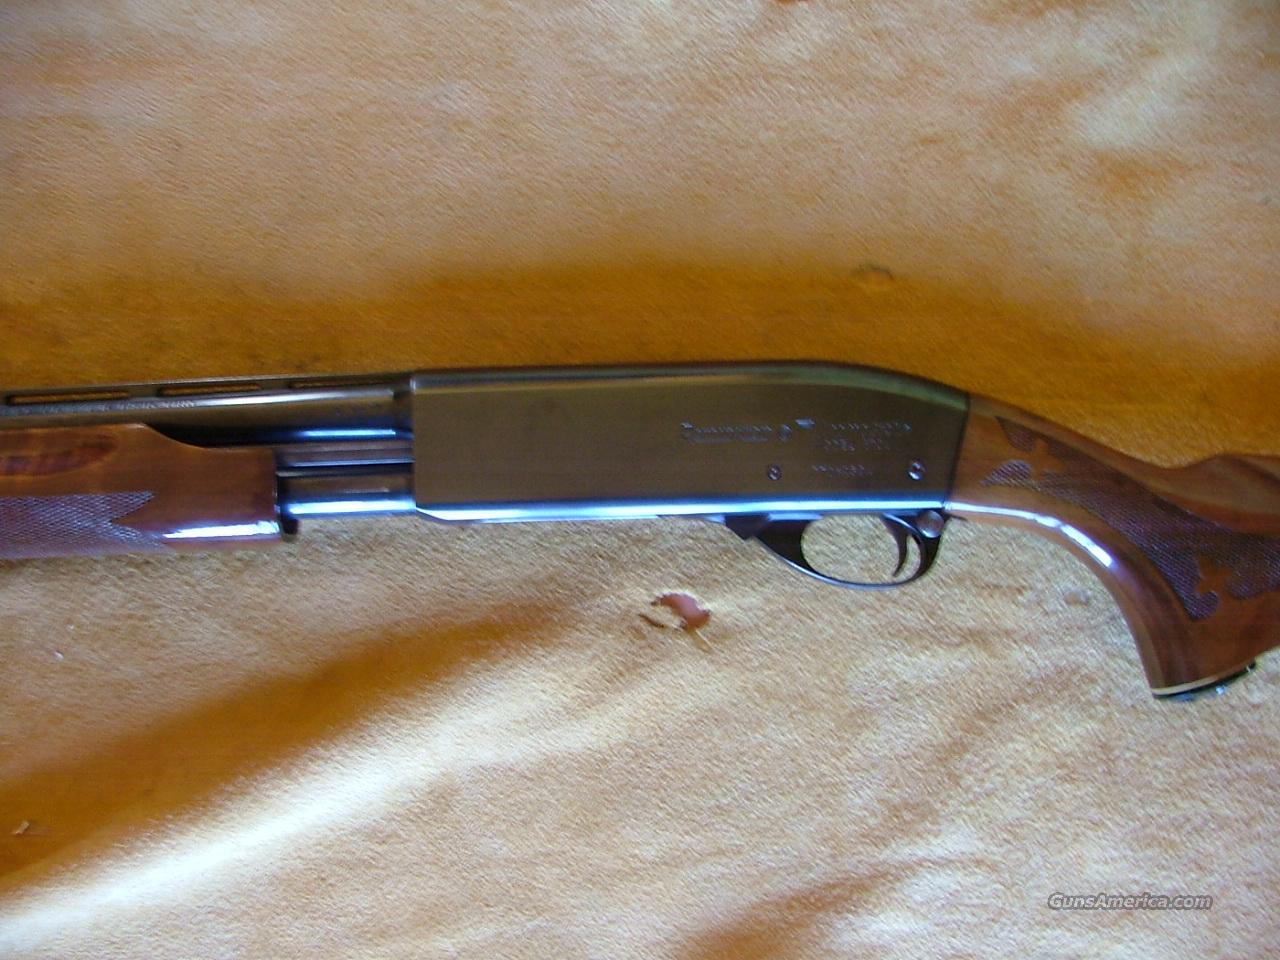 remington 870 28 gauge wingmaster  Guns > Shotguns > Remington Shotguns  > Pump > Trap/Skeet